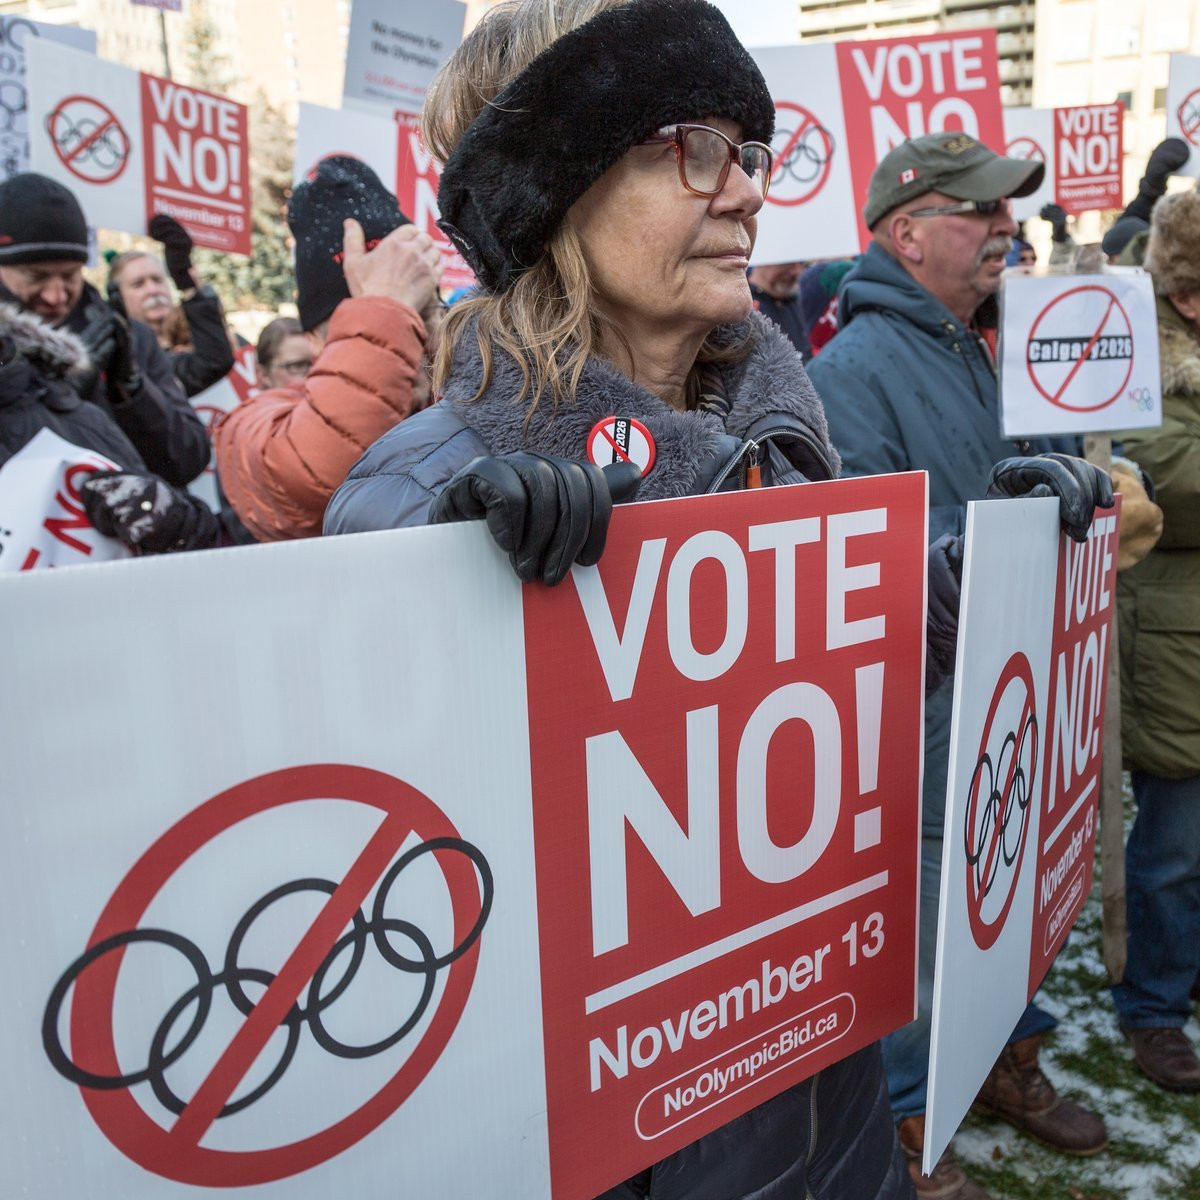 It has been claimed by the IOC that a lack of clarity over funding was a major contributor to Calgary's defeat in this week's plebiscite, leading to the collapses of the city's bid for the 2026 Winter Olympic and Paralympic Games ©Getty Images